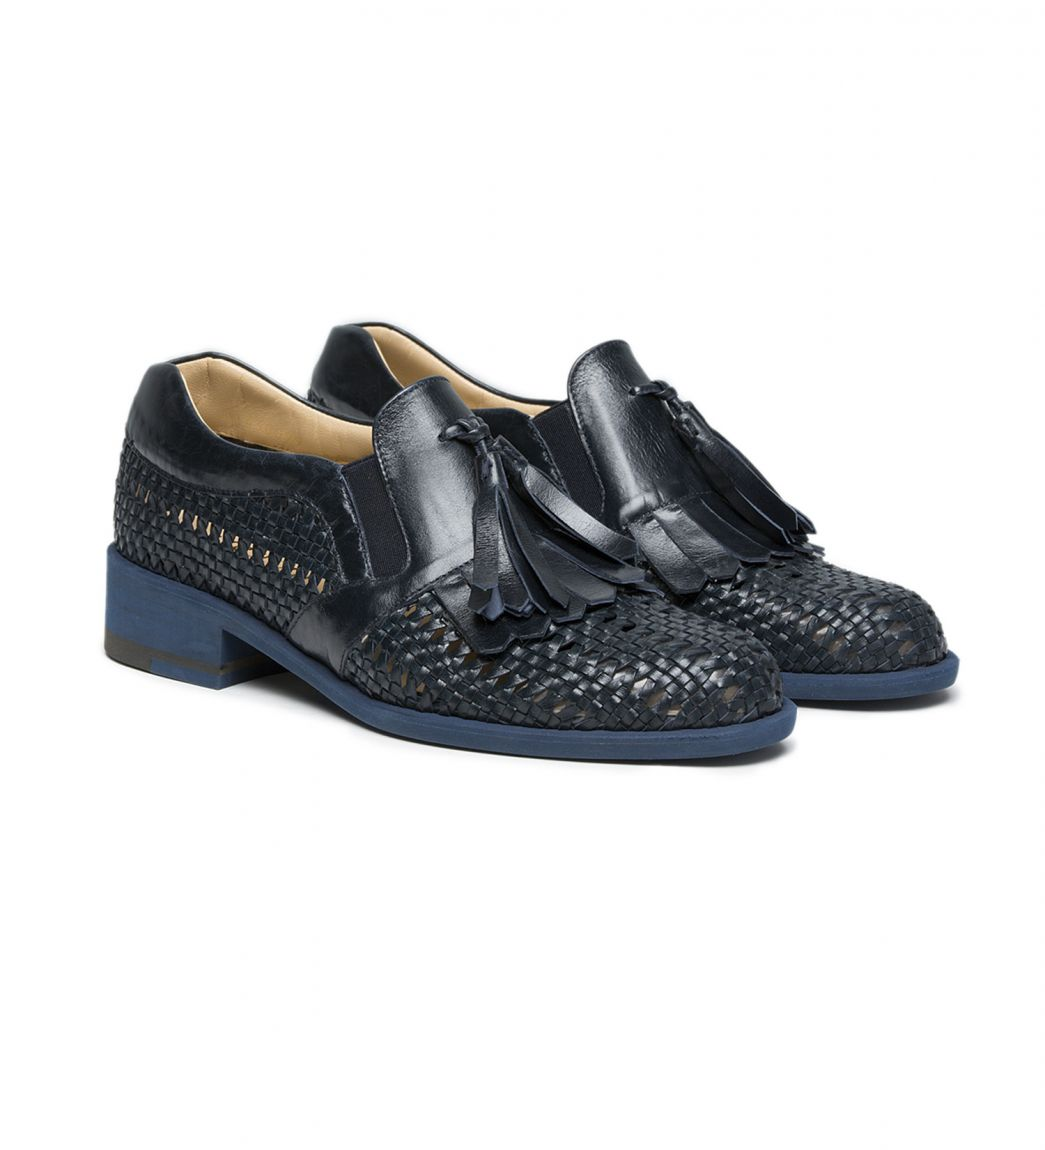 loafer-black-testoni_f430099-96695-293_02.jpg